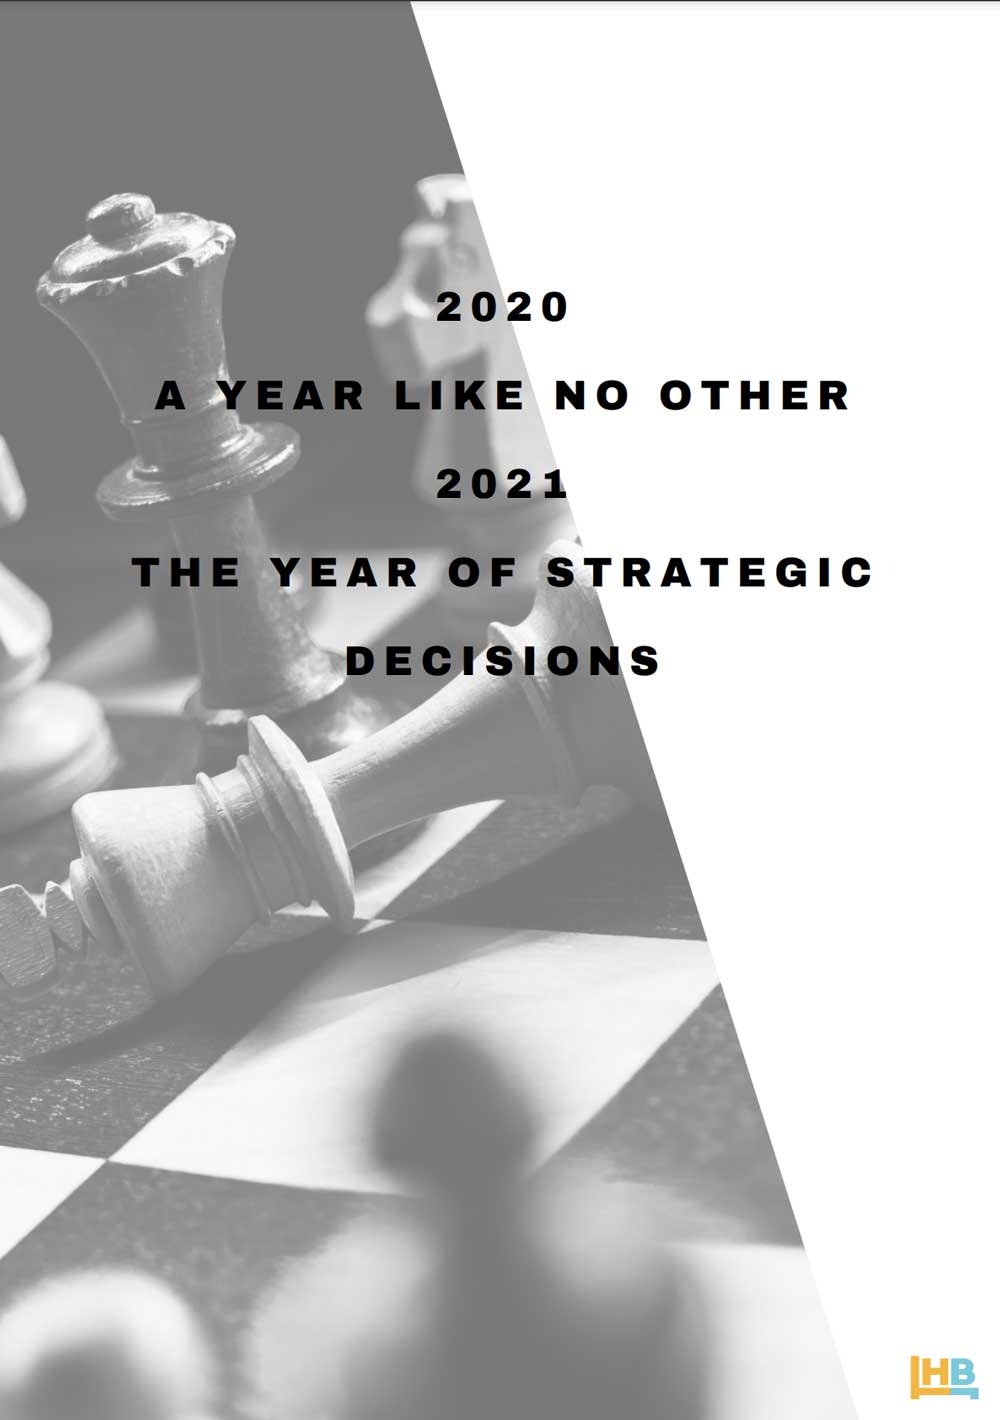 2020 a year like no other 2021 the year of strategic decisions